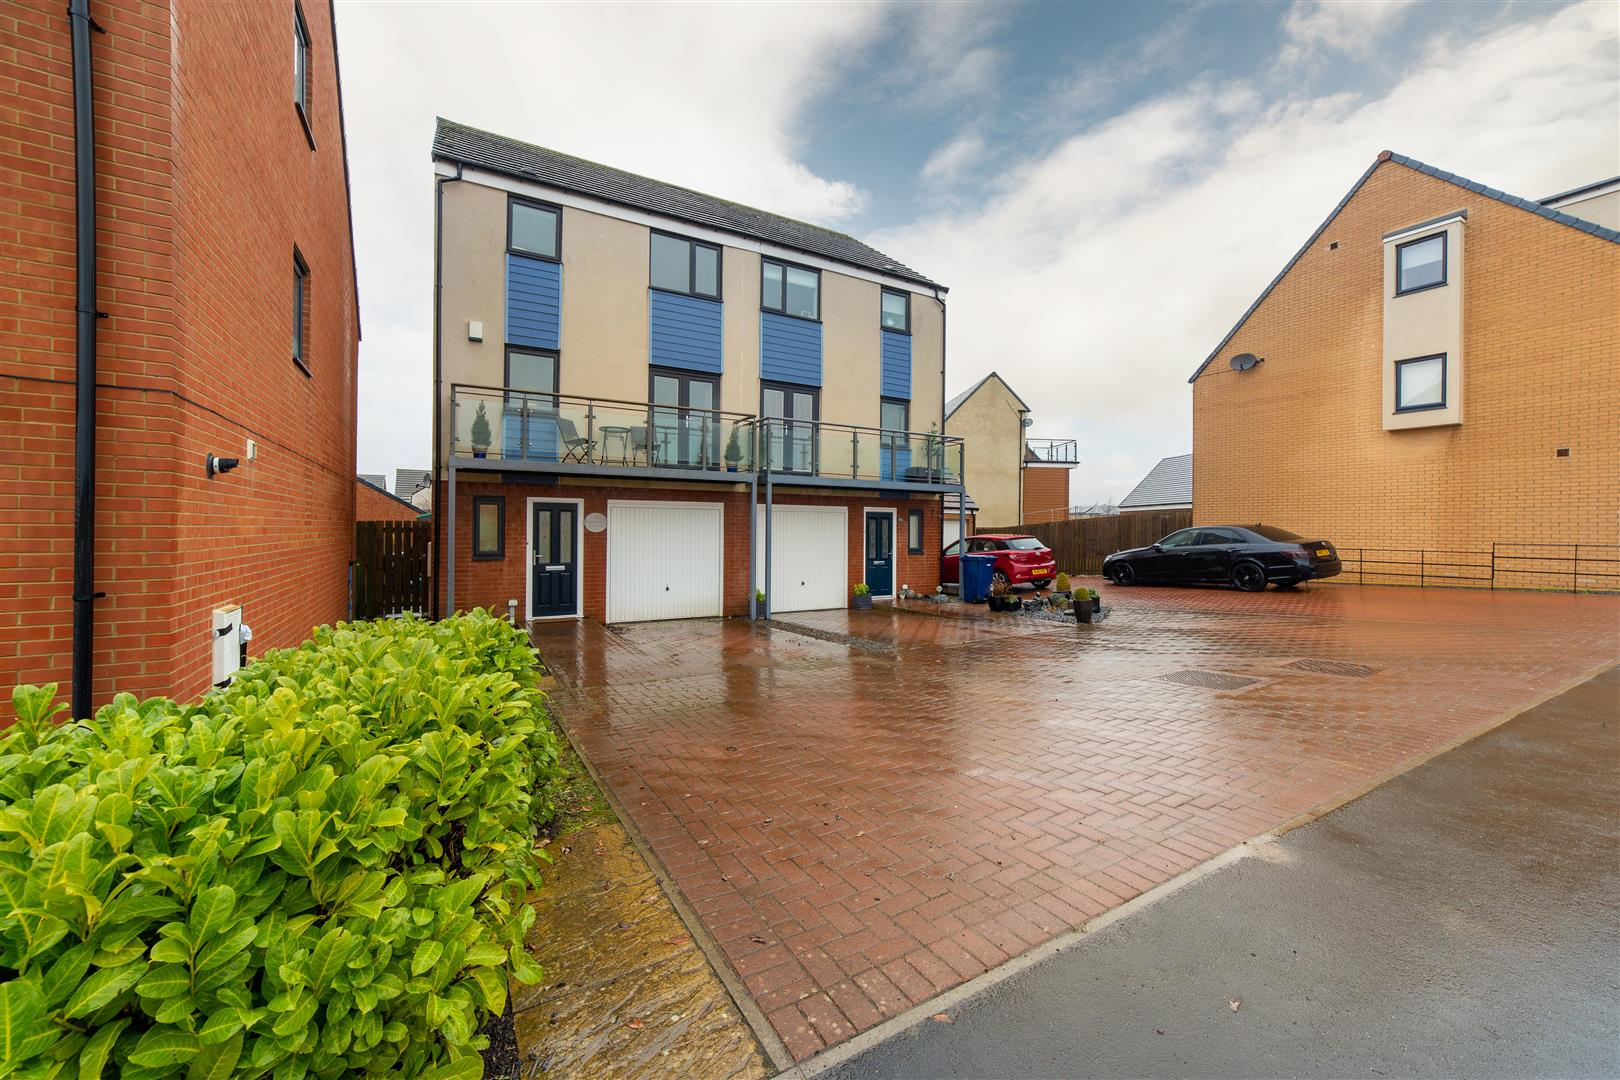 4 bed semi-detached house for sale in Great Park, NE13 9BX, NE13